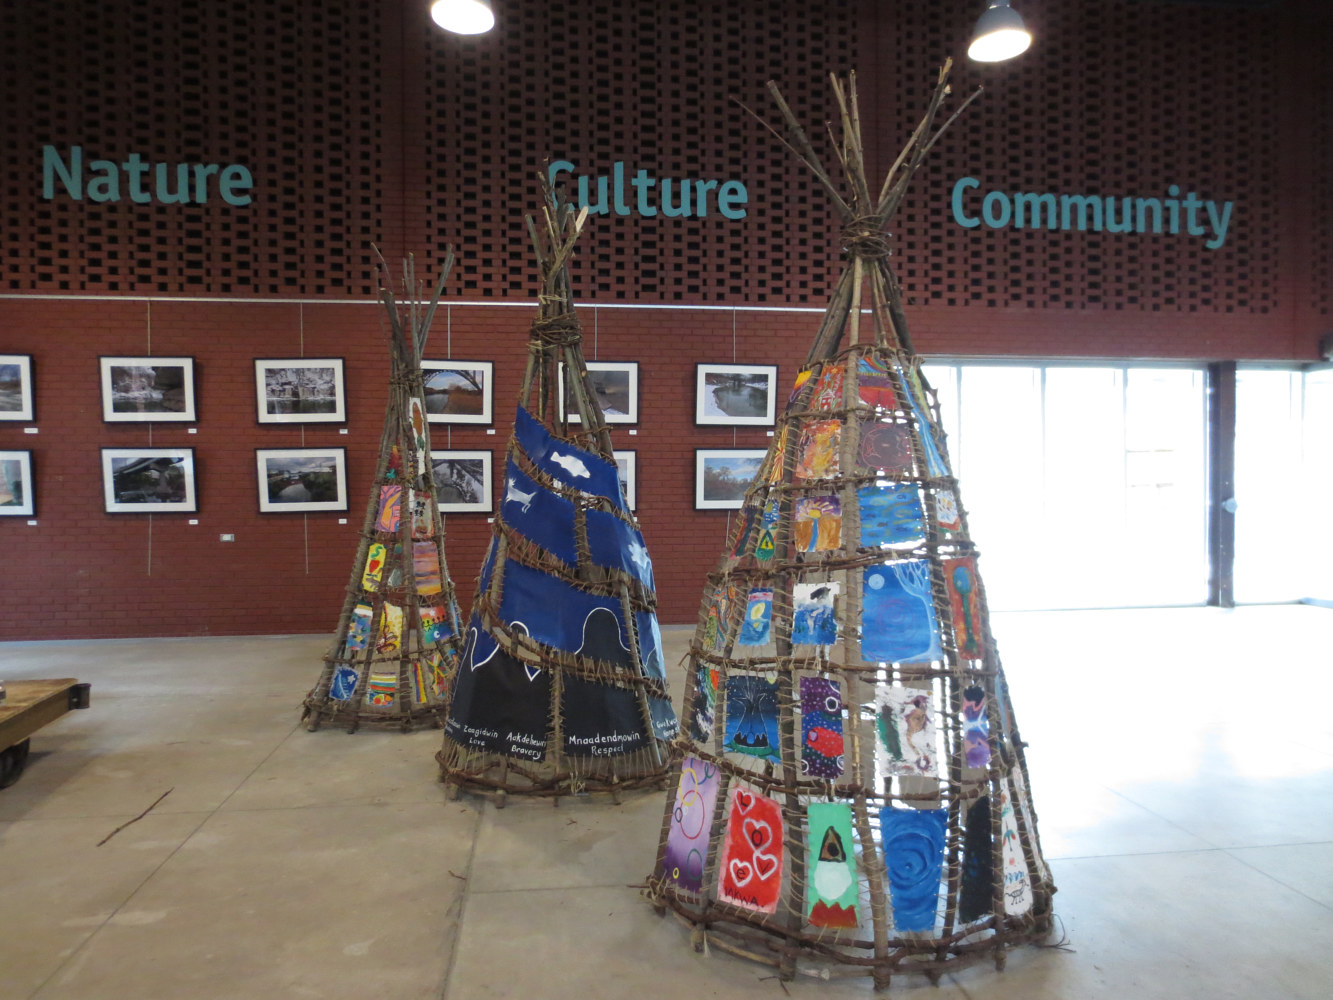 Painting Tipi Teaching Project , Wisdom, Weaving and Stories - Exhibit at Evergreen Brickworks by Pamela Schuller